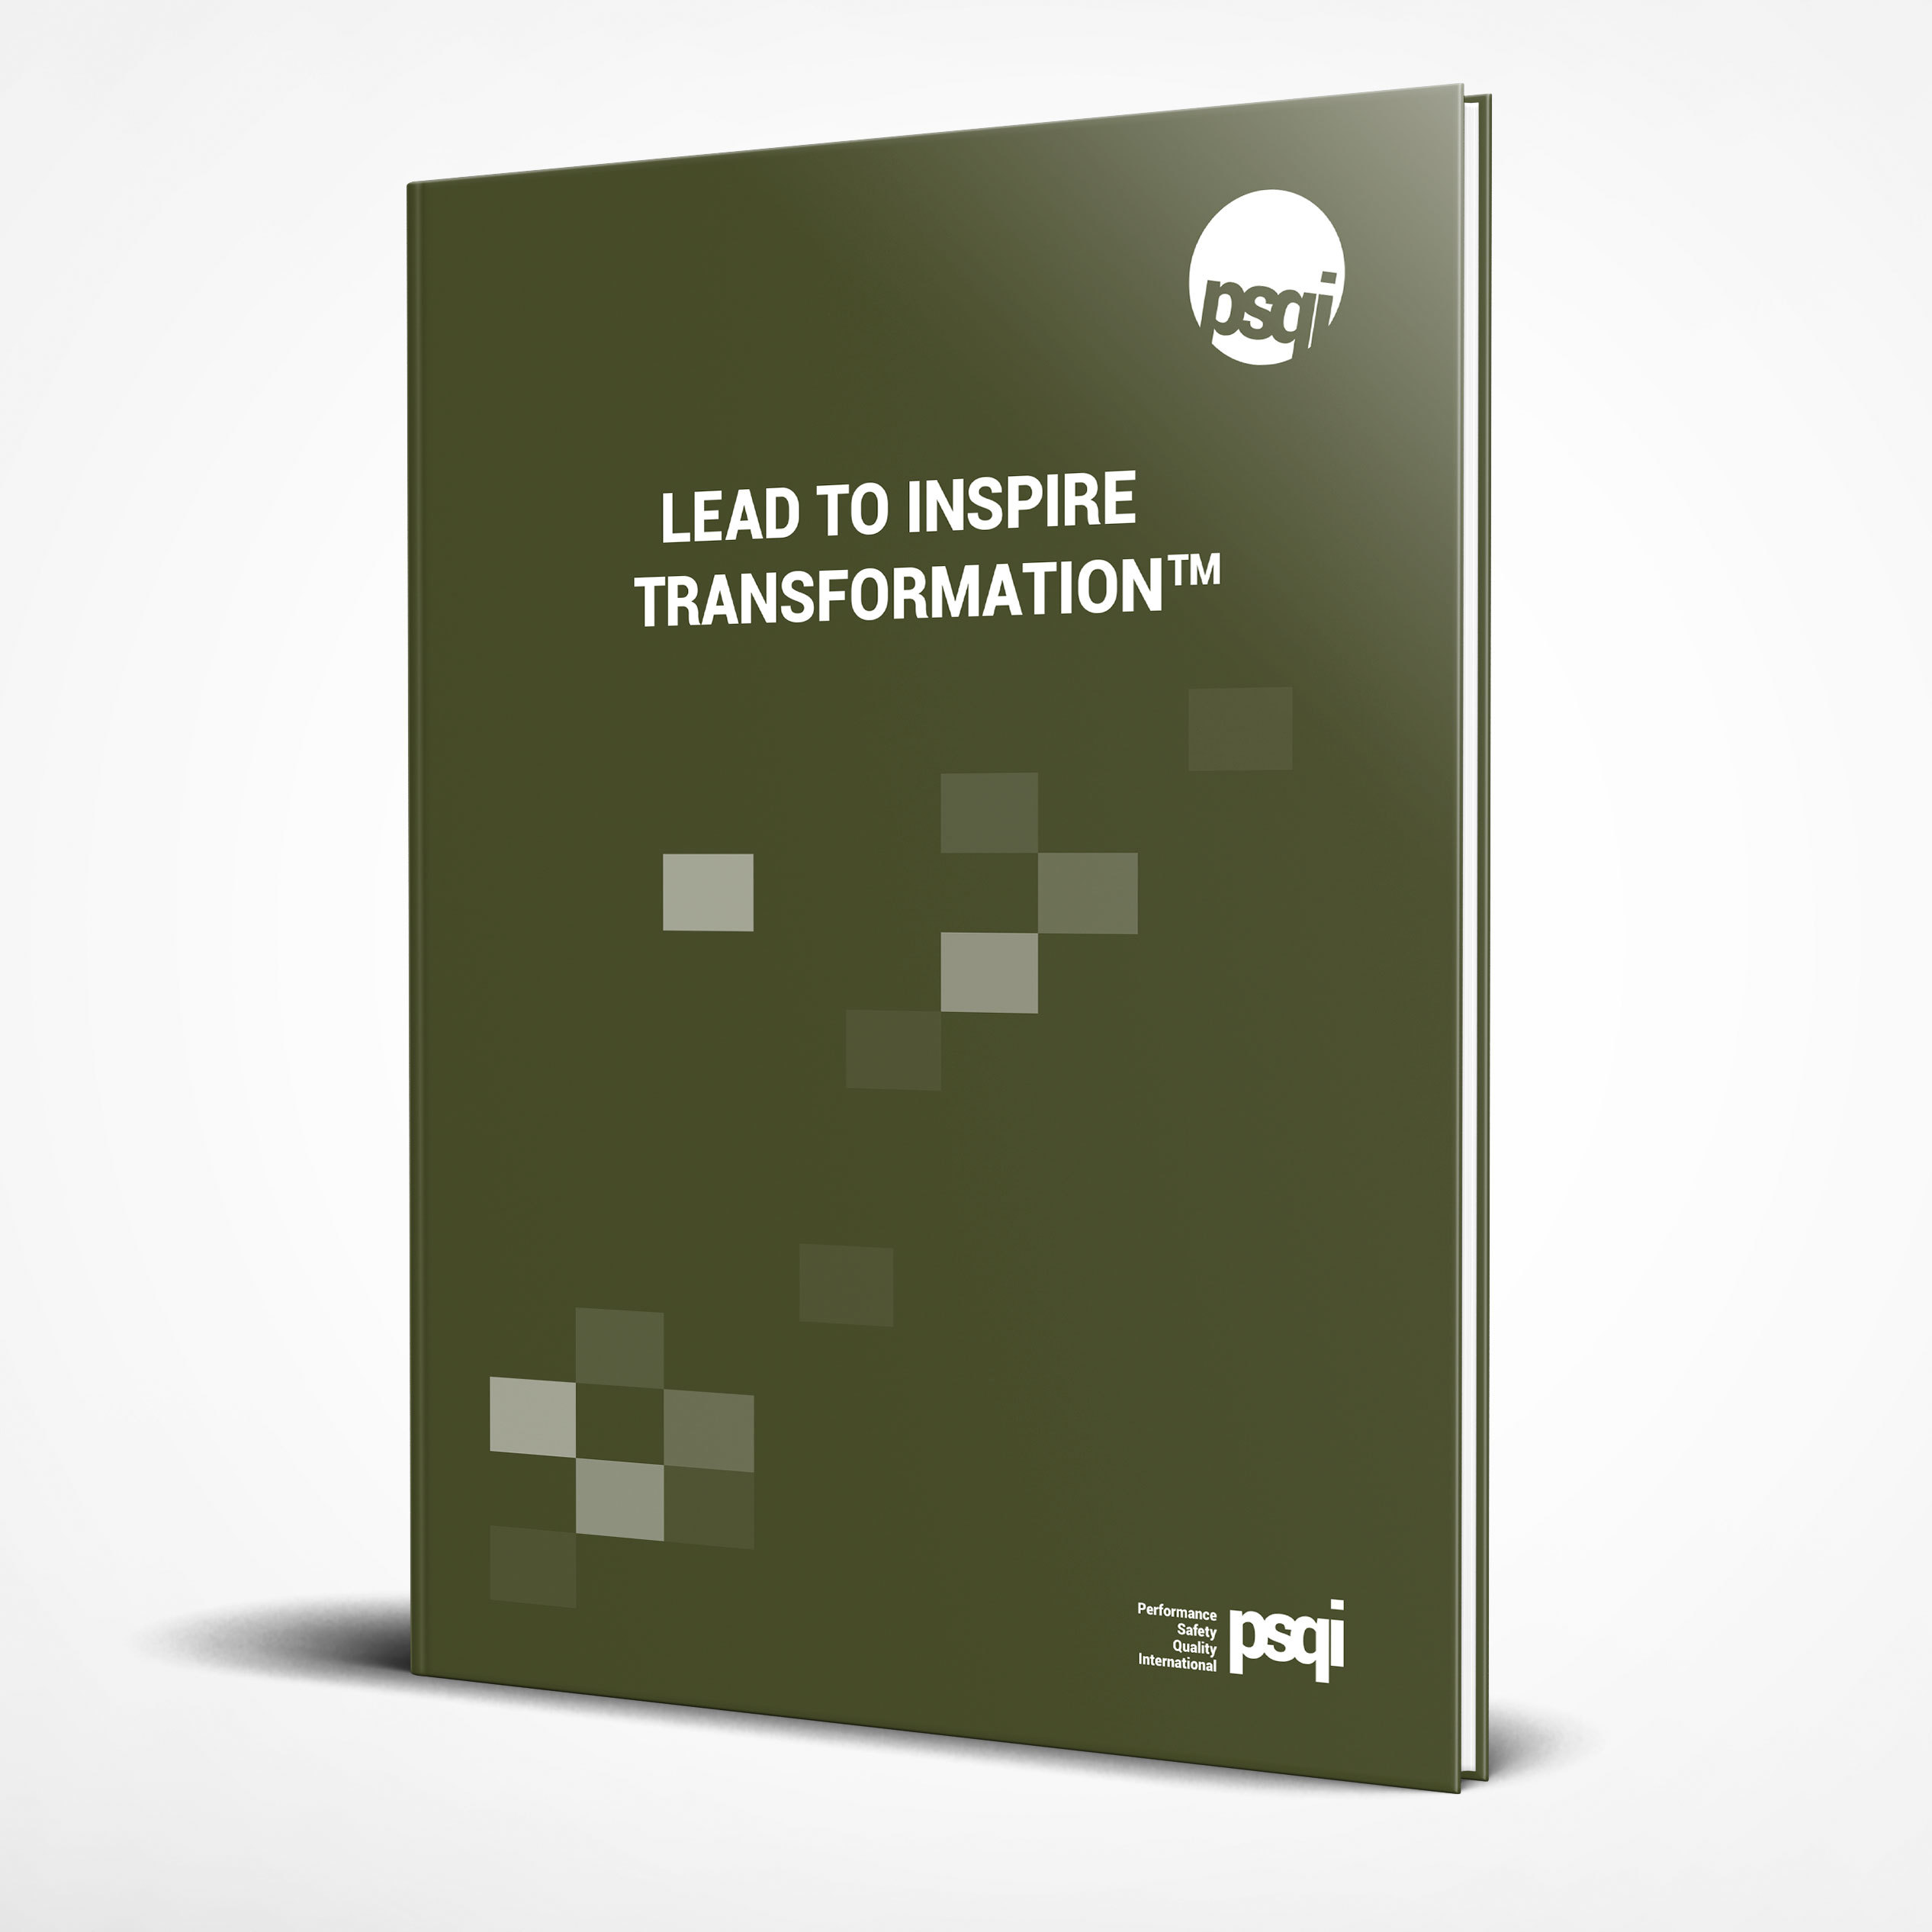 Lead_to_inspire_transformation-cover